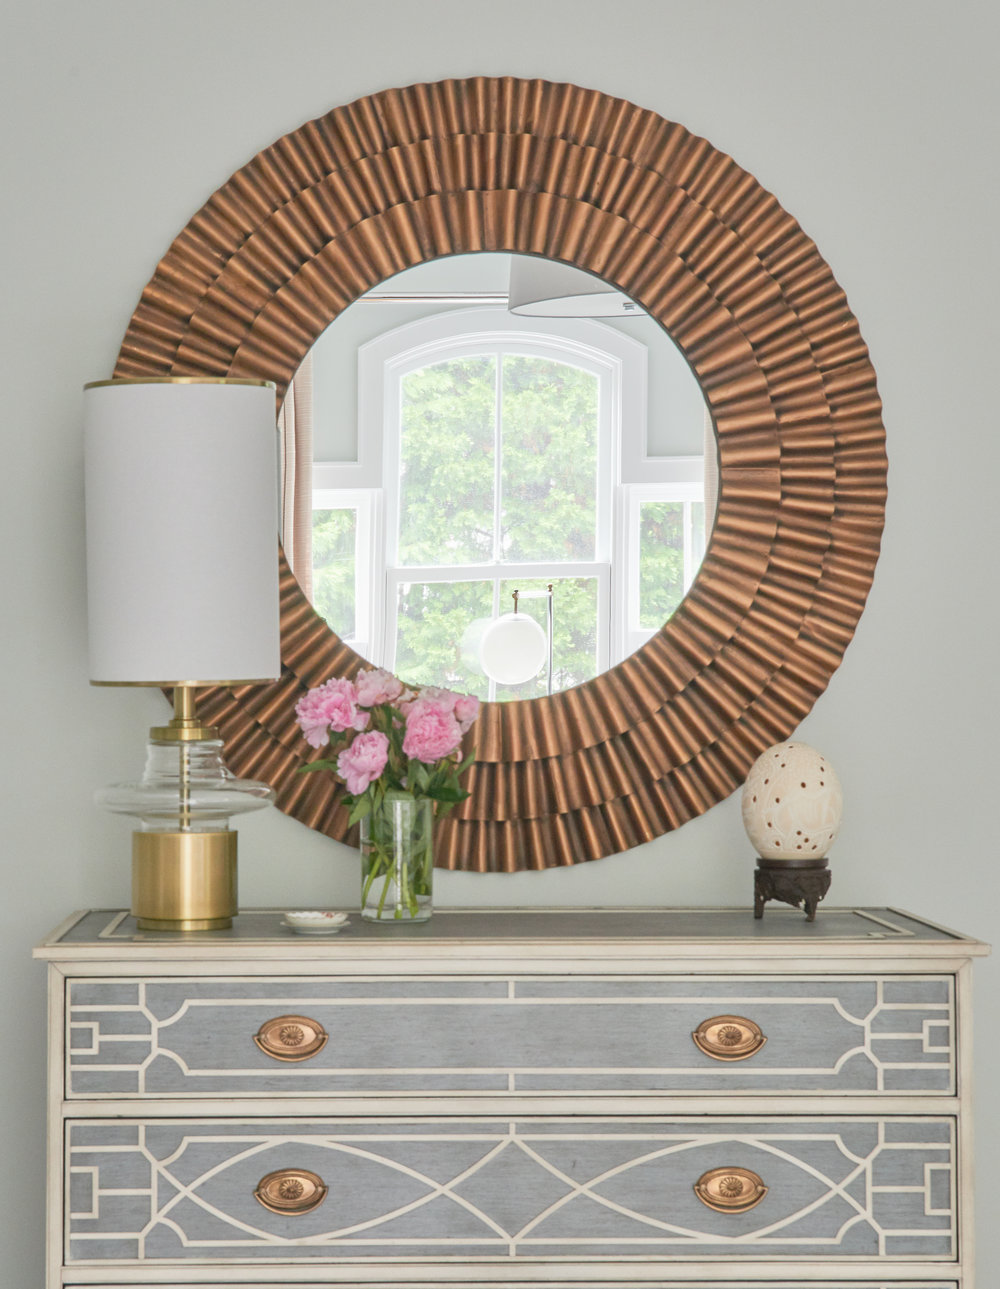 Bedroom dresser with copper drawer pulls and mirror